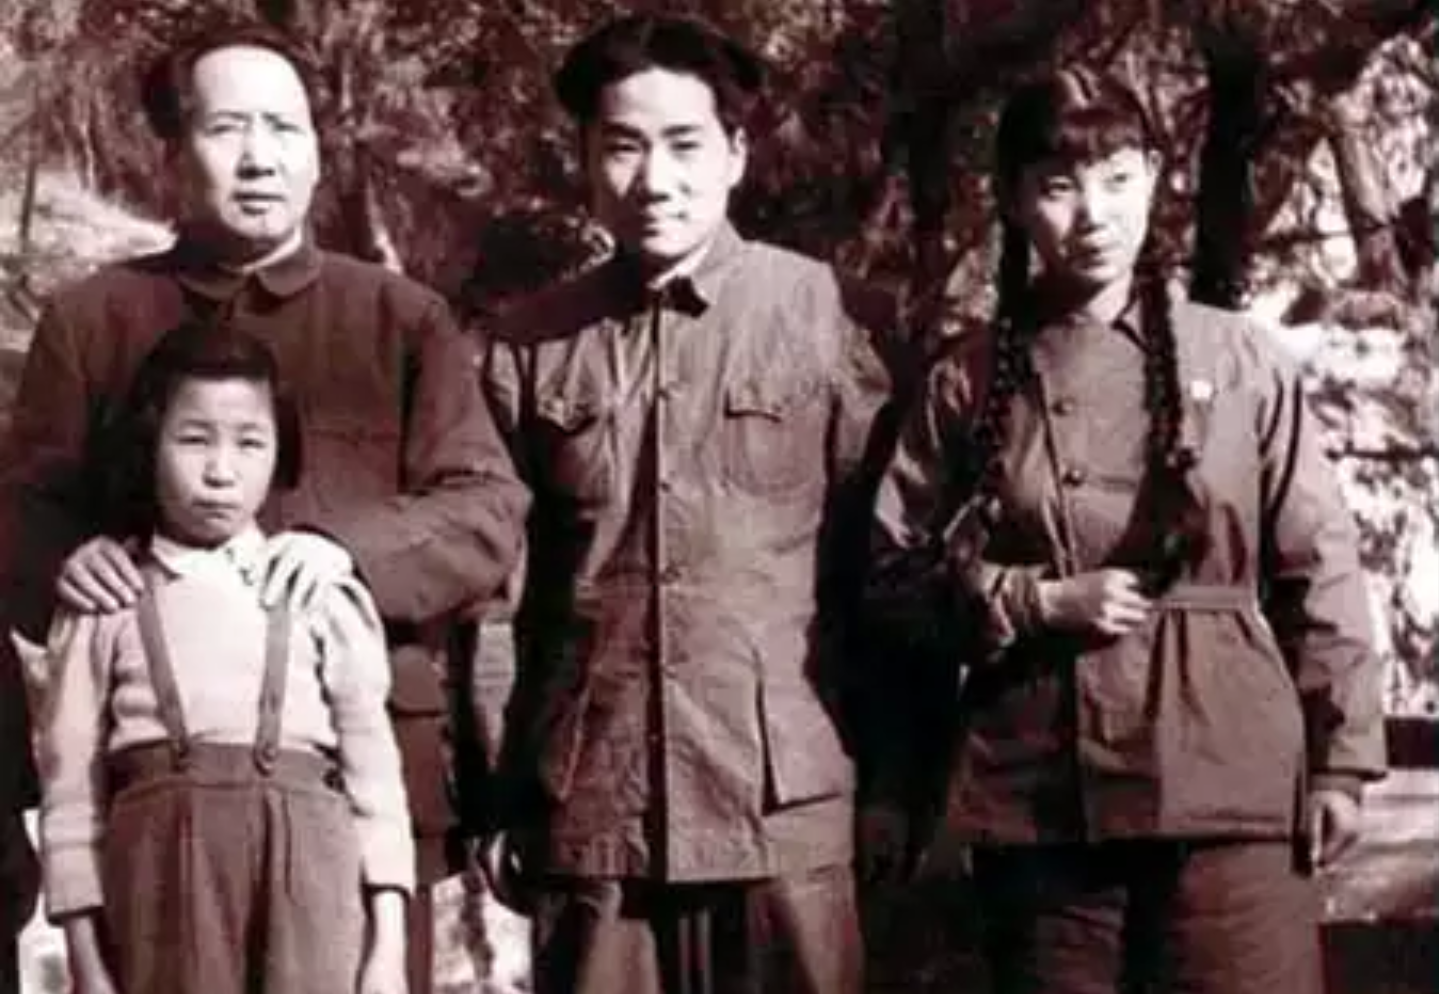 Mao Zedong stands next to Mao Anying, second left, the eldest son of Mao Zedong and Yang Kaihui, Liu Songlin, left, the wife of Mao Anying, and Li Na, the daughter of Mao Zedong and Jiang Qing, in Xiangshan (Fragrance Hill), Beijing, April 1949.